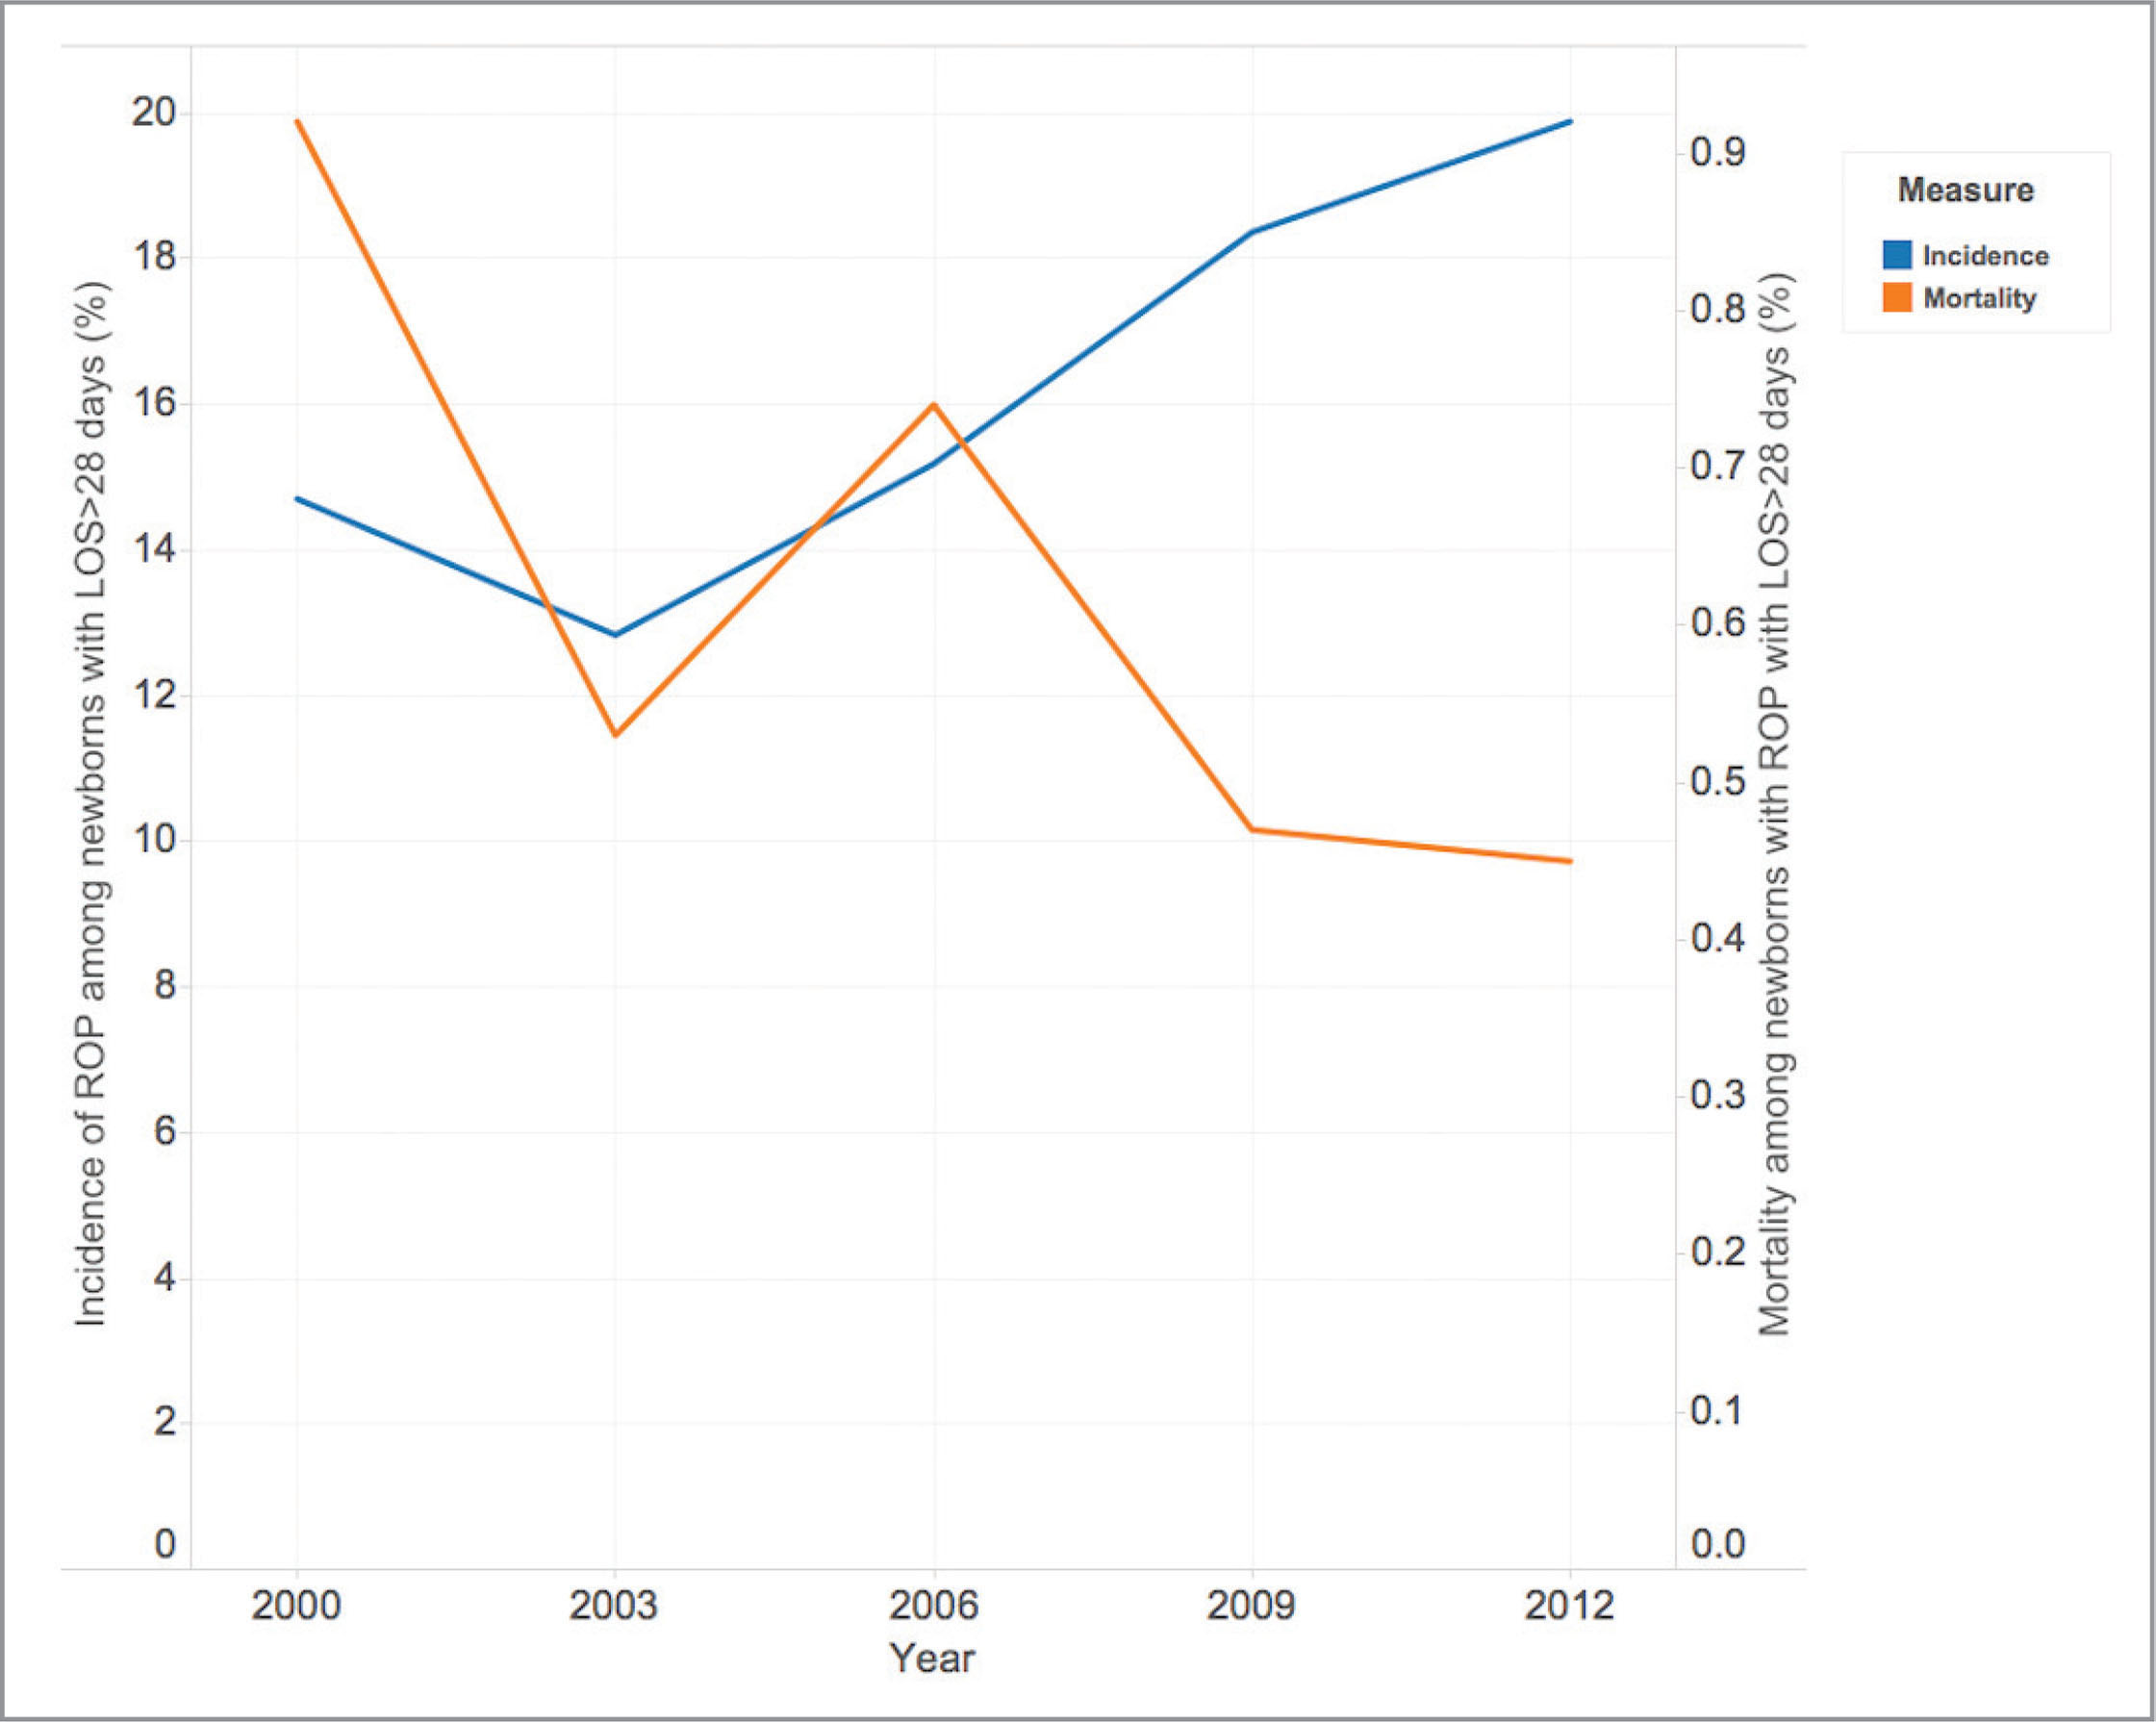 �A;Graph showing incidence of retinopathy of prematurity (ROP) among newborns with length of stay (LOS) longer than 28 days (left axis, blue) along with in-hospital mortality among newborns with ROP with LOS longer than 28 days (right axis, orange) in the same years.�A;